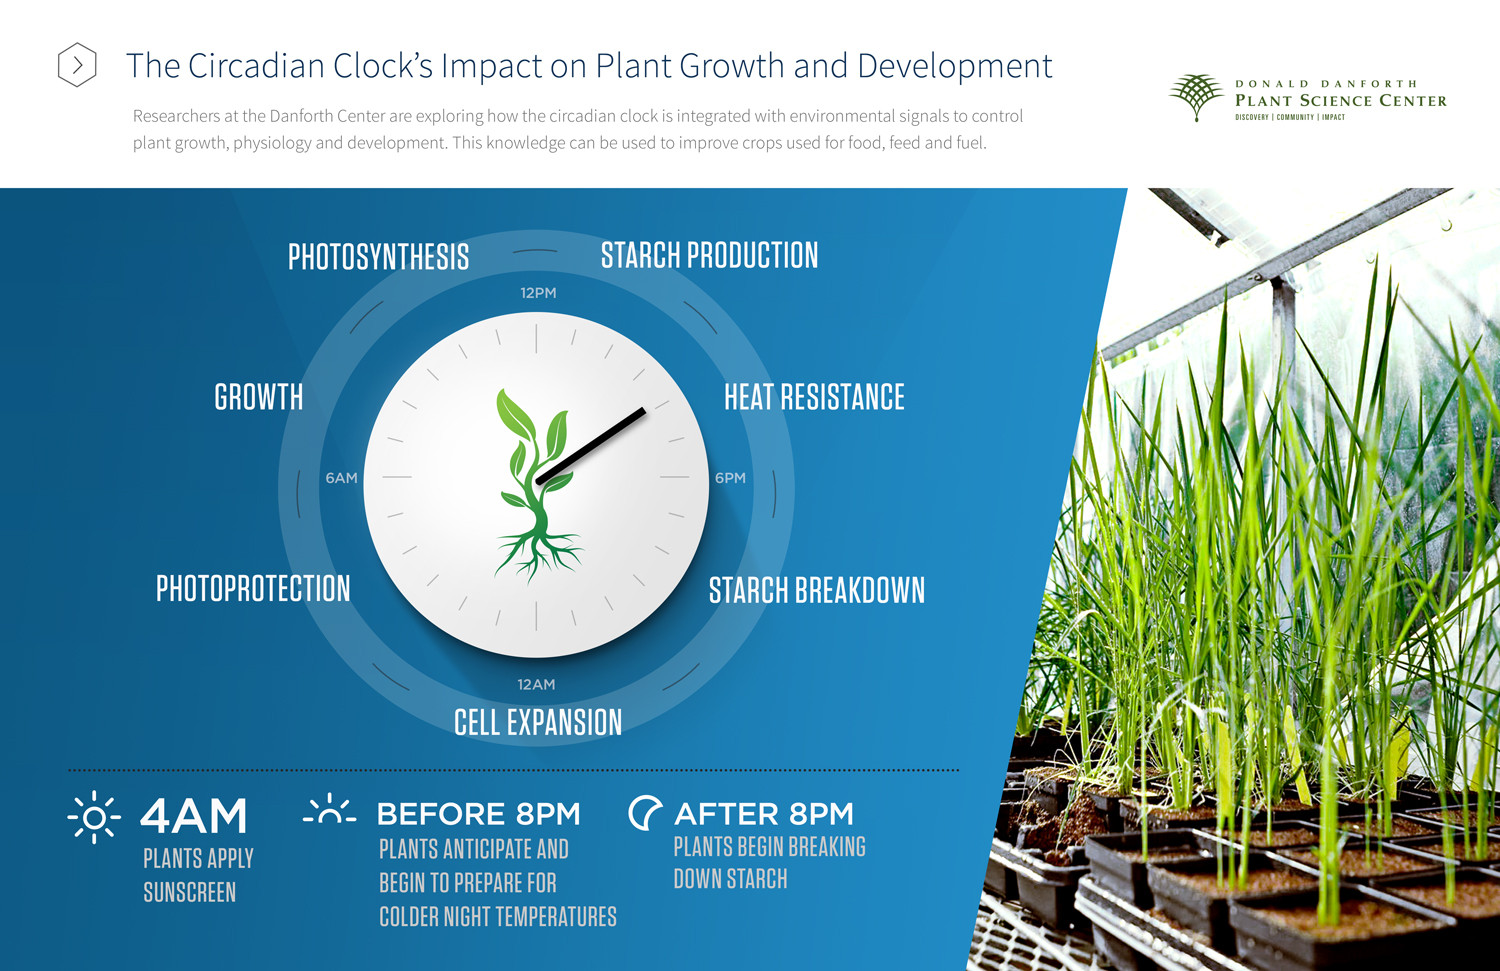 The Circadian Clock's Impact on Plant Growth and Development Infographic